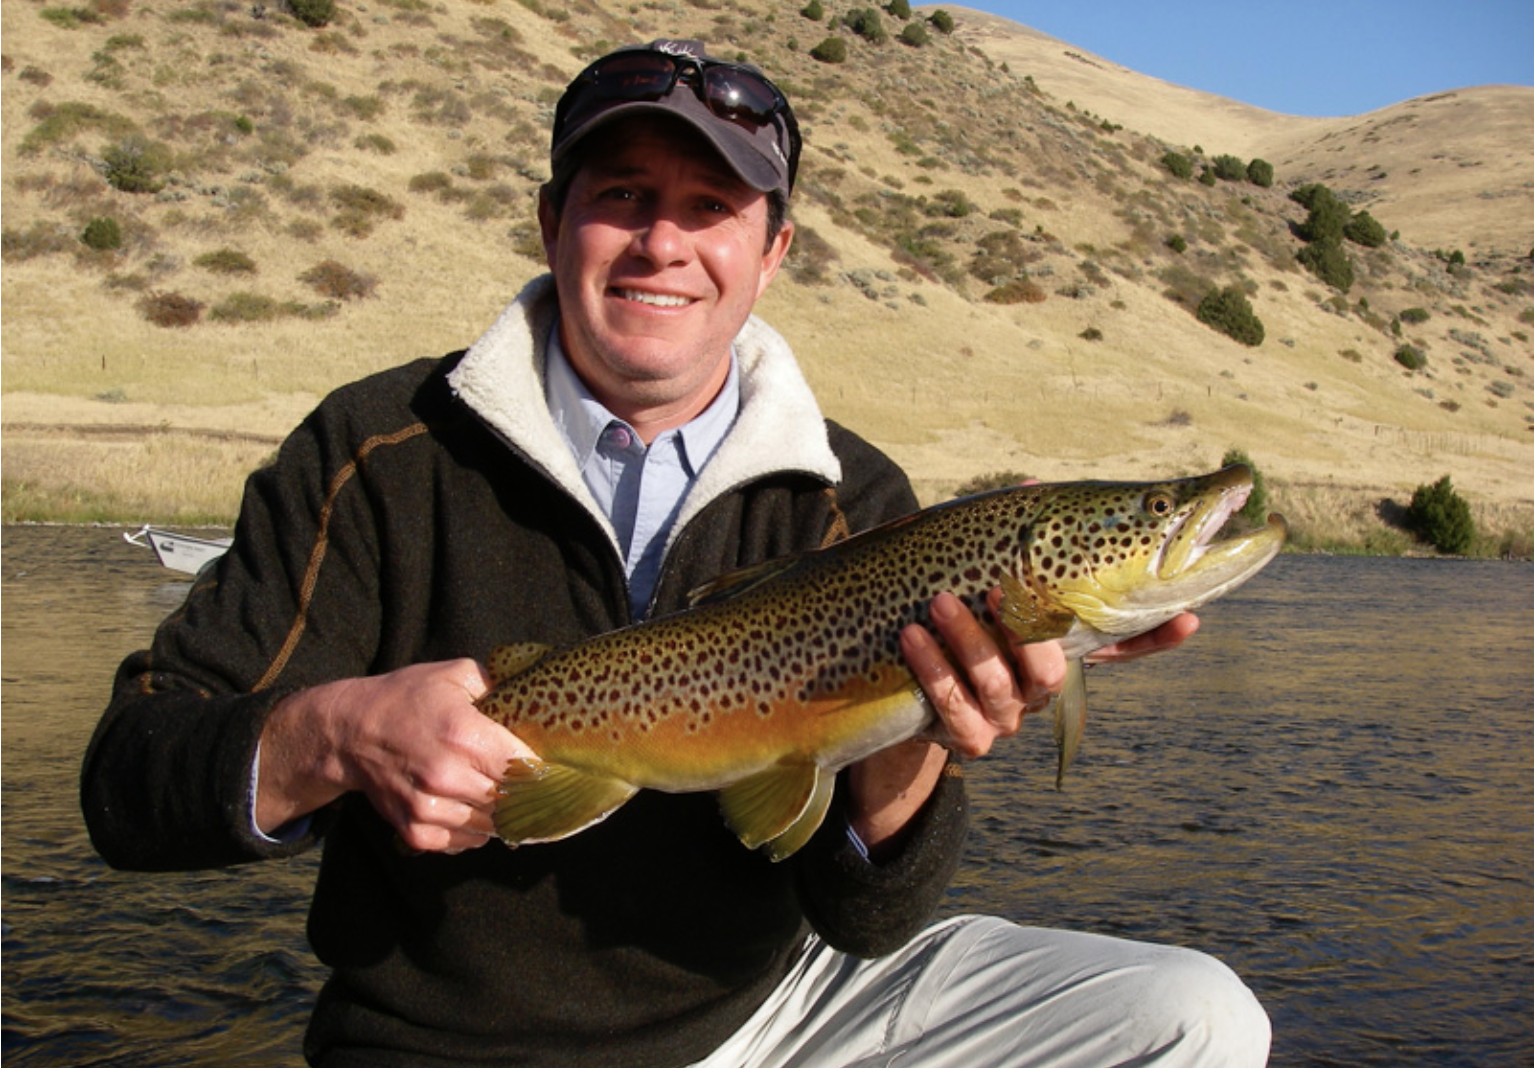 Fins & Feathers of Bozeman fly shop and fly fishing guide service guest with a terrific Lower Madison river Brown Trout.